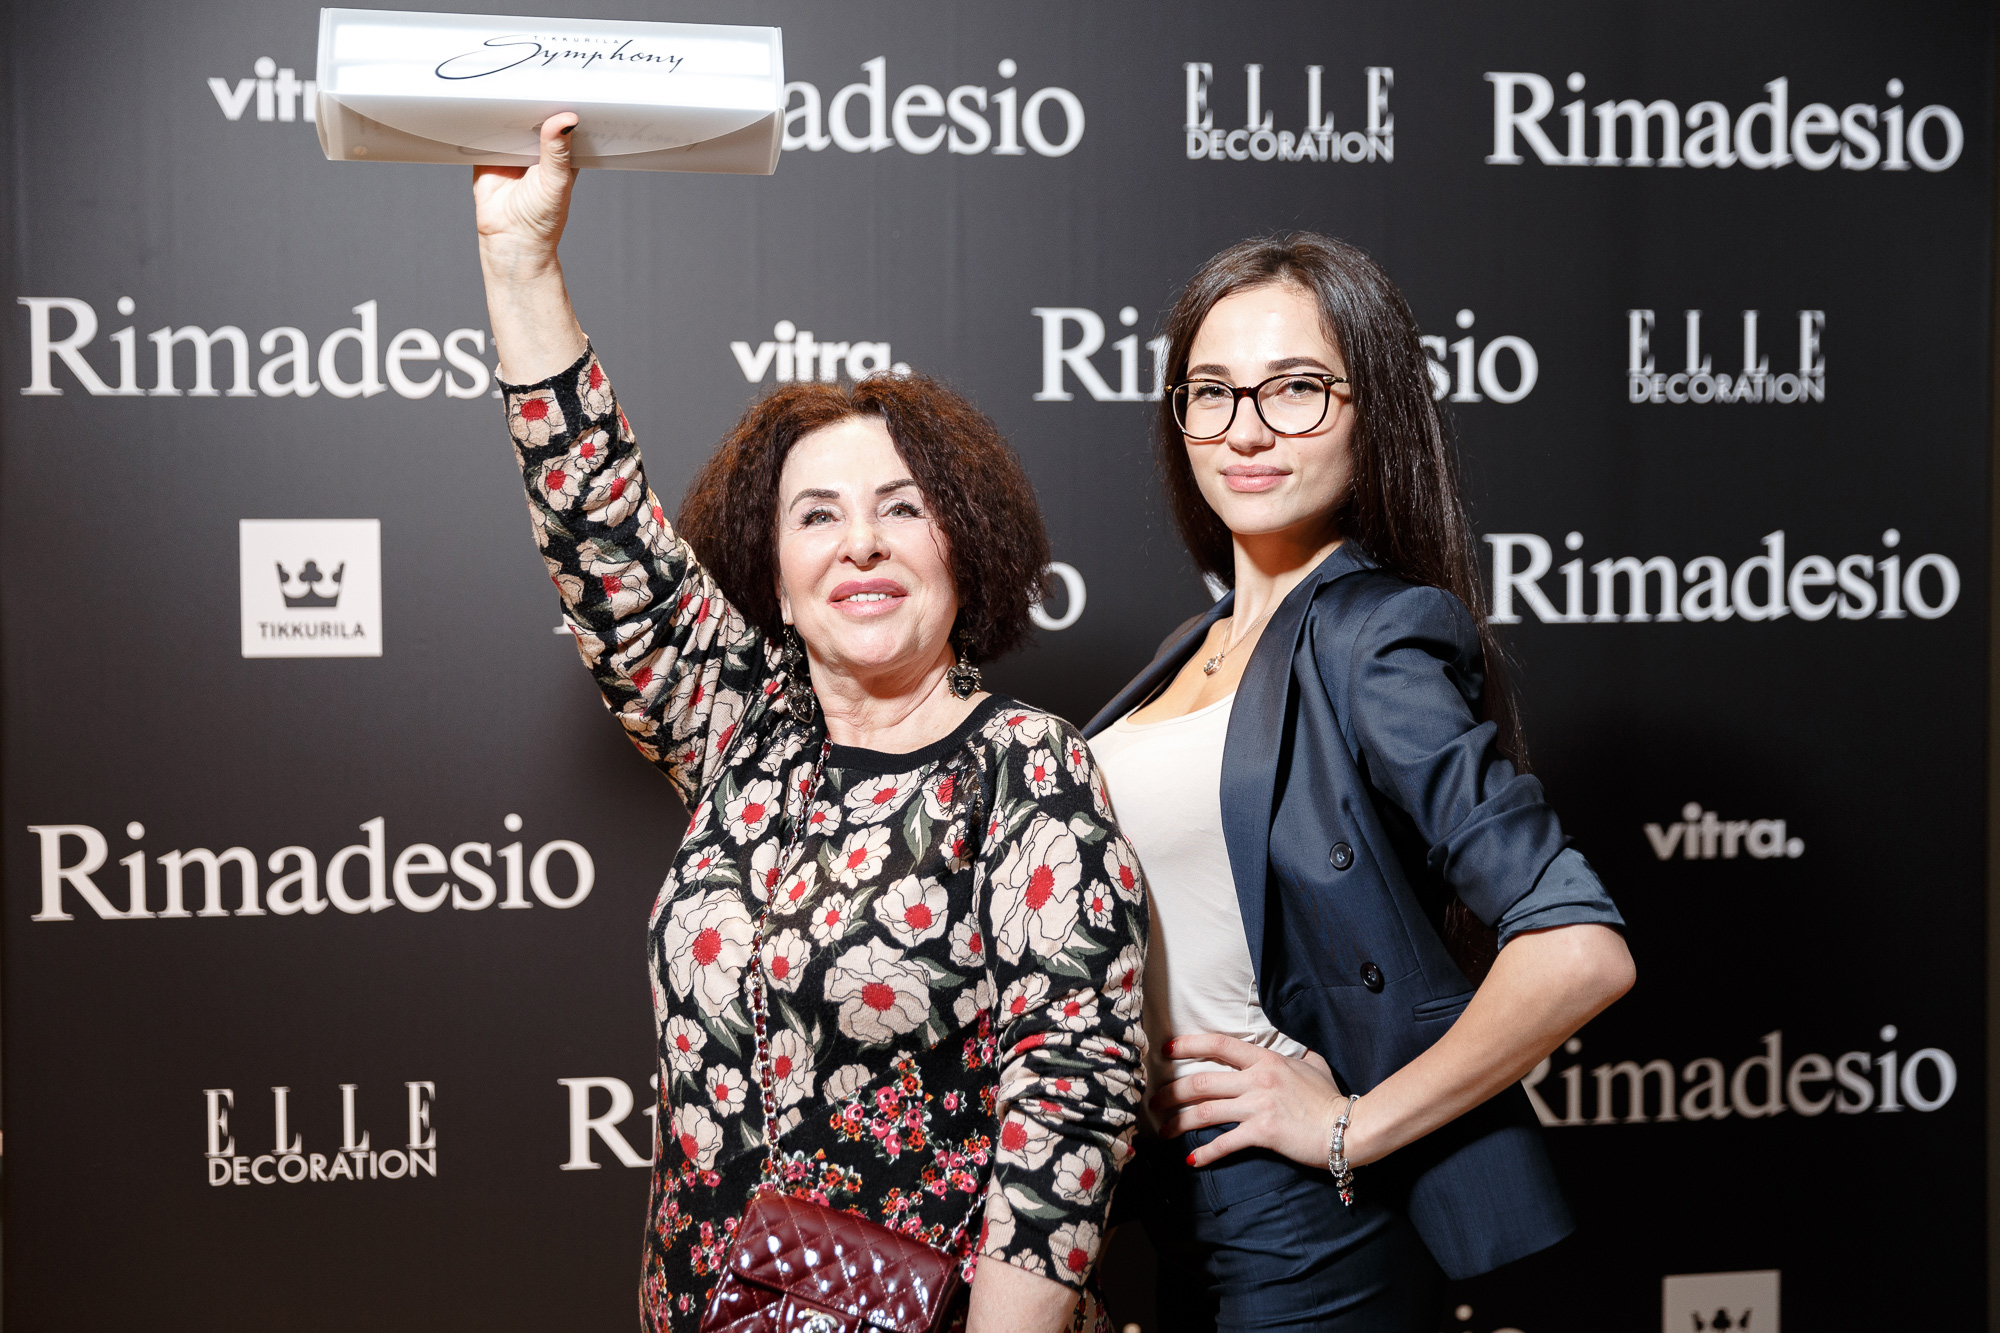 rimadesio-moscow-241